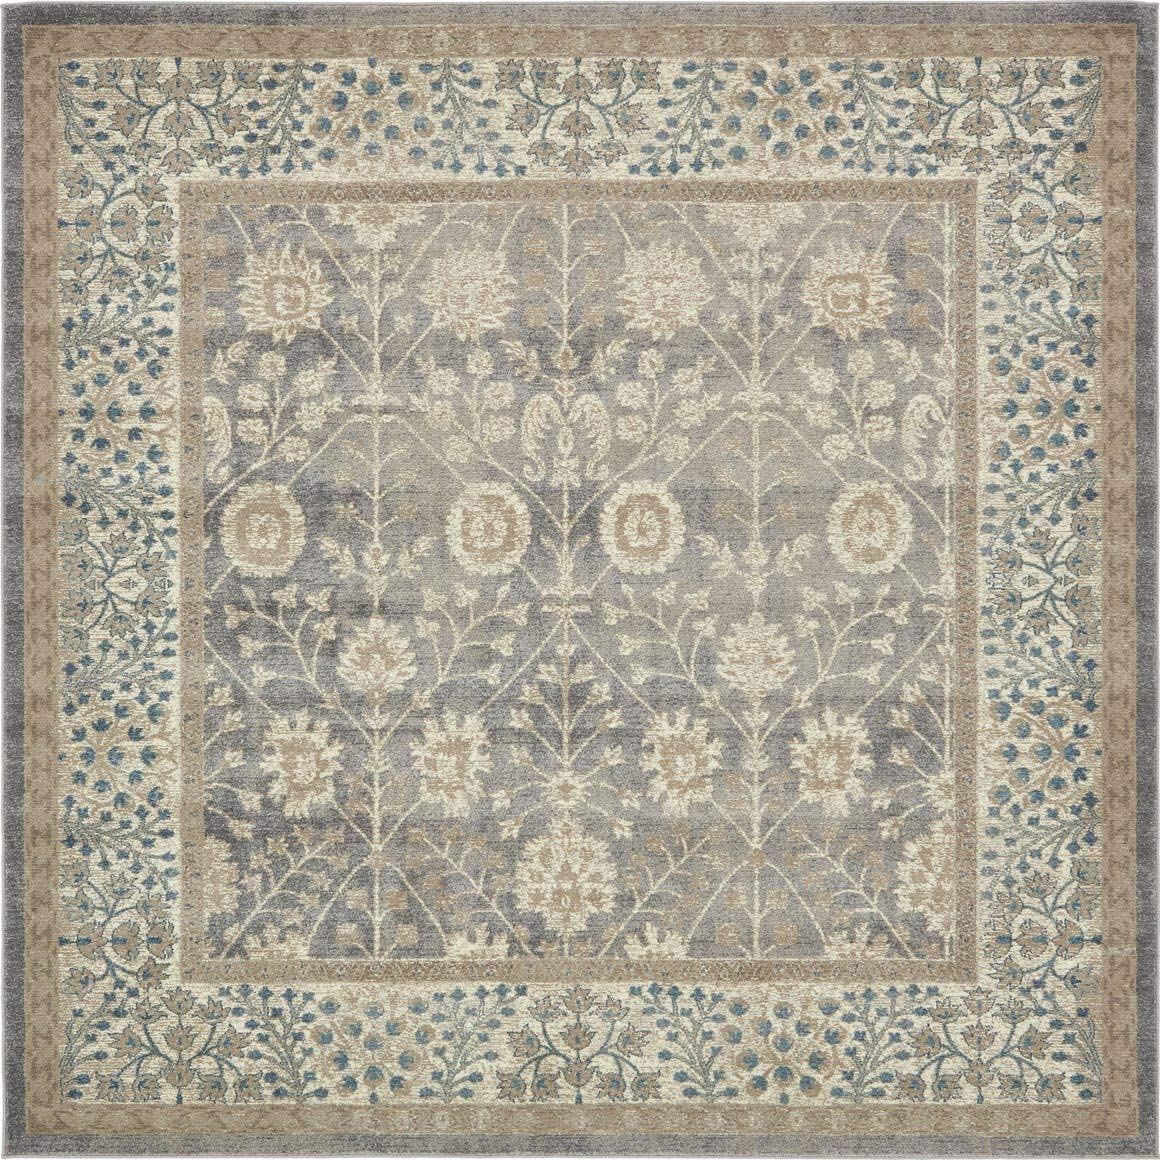 Unique Loom Salzburg Collection Traditional Oriental Gray Square Rug 8 0 x 8 0